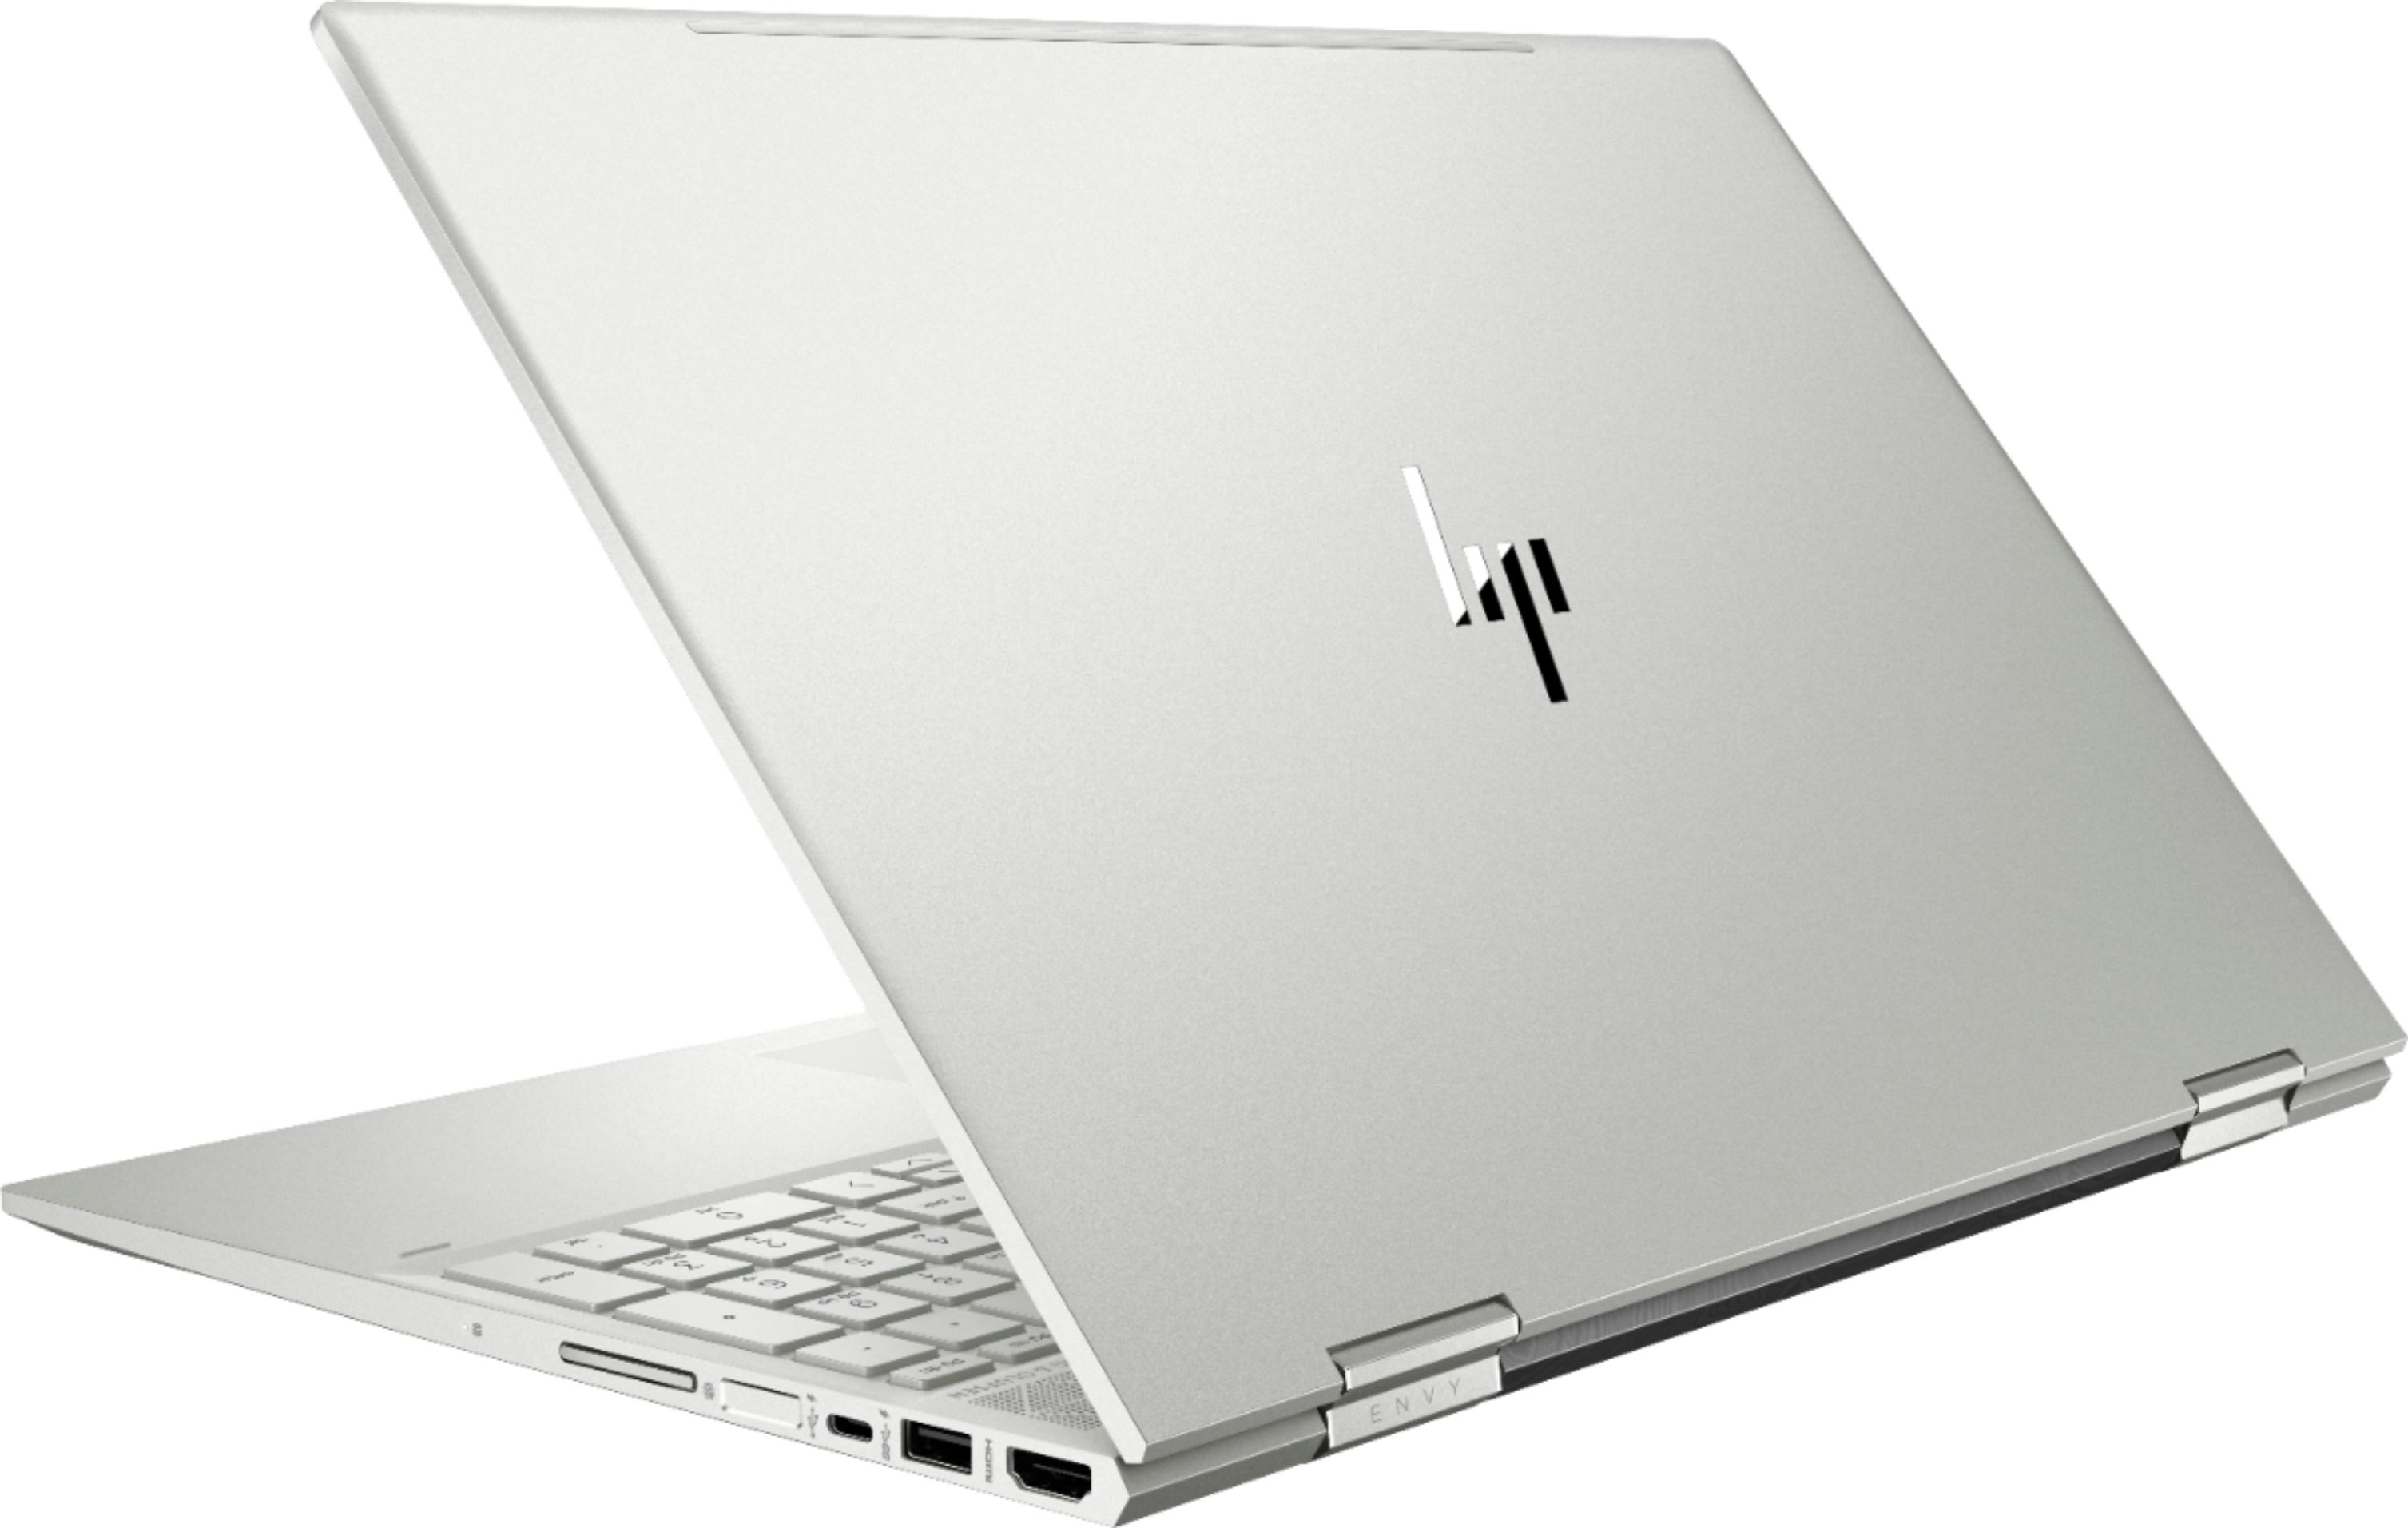 """Alt View Zoom 3. Geek Squad Certified Refurbished ENVY x360 2-in-1 15.6"""" Touch-Screen Laptop - Intel Core i7 - 12GB Memory - 256GB SSD - HP Finish In Natural Silver."""